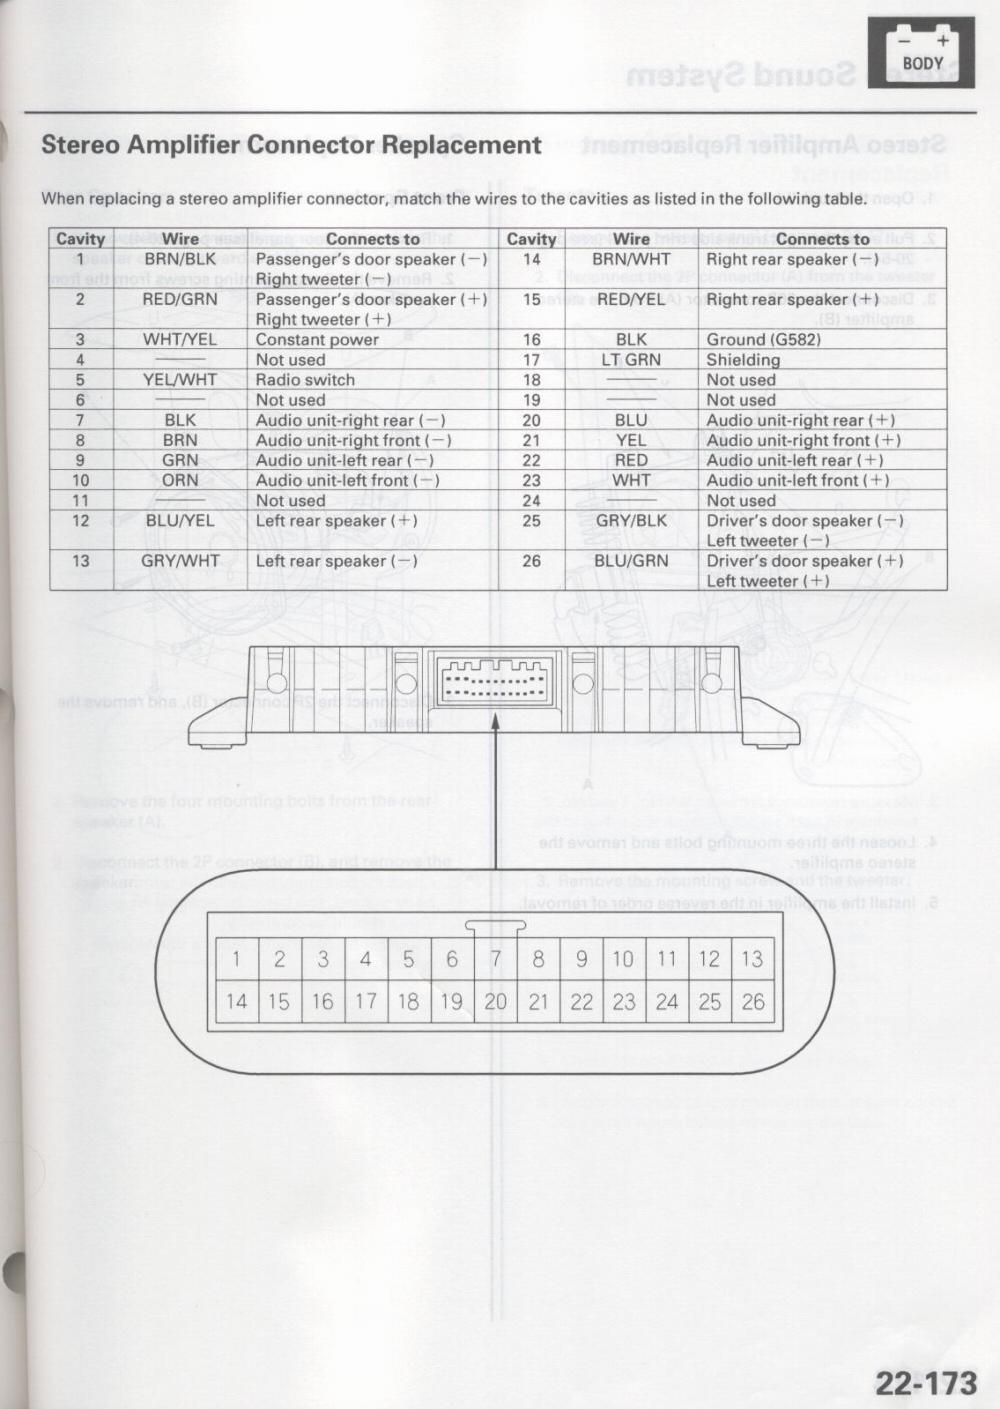 Acura 2002 TL car stereo amplifier wiring diagram harness car radio stereo audio wiring diagram autoradio connector wire 2012 chrysler 200 speaker wiring diagram at crackthecode.co